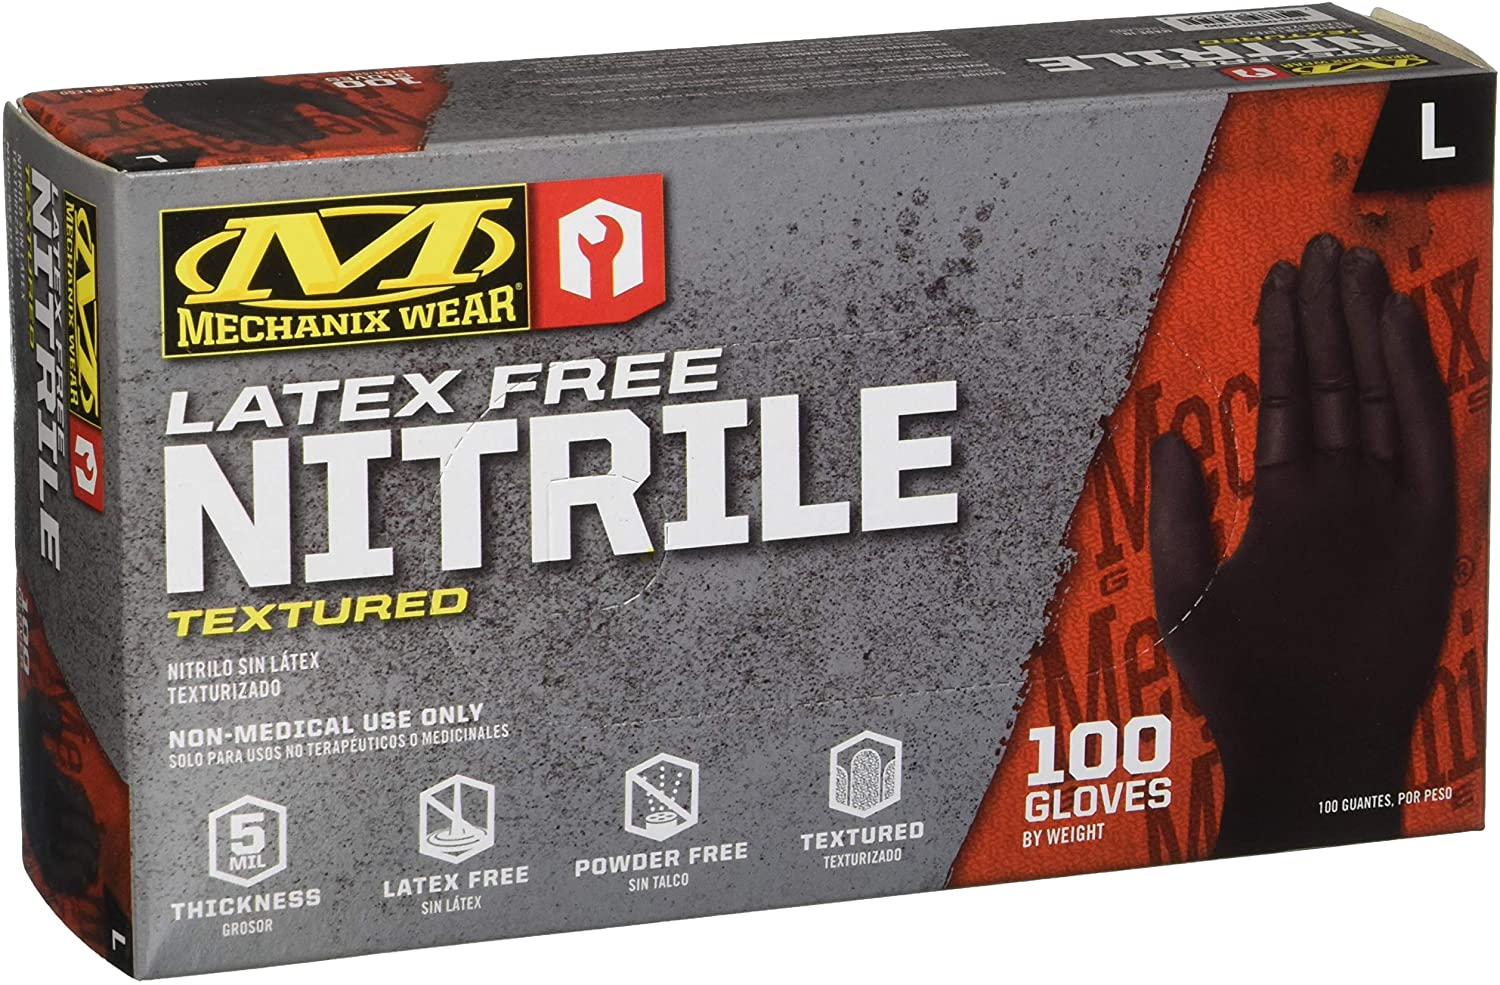 Mechanix Wear - Nitrile Disposable Gloves, Powder Free, Latex Free, Textured - 5 mil Black (Large, 100 Pack): Home Improvement